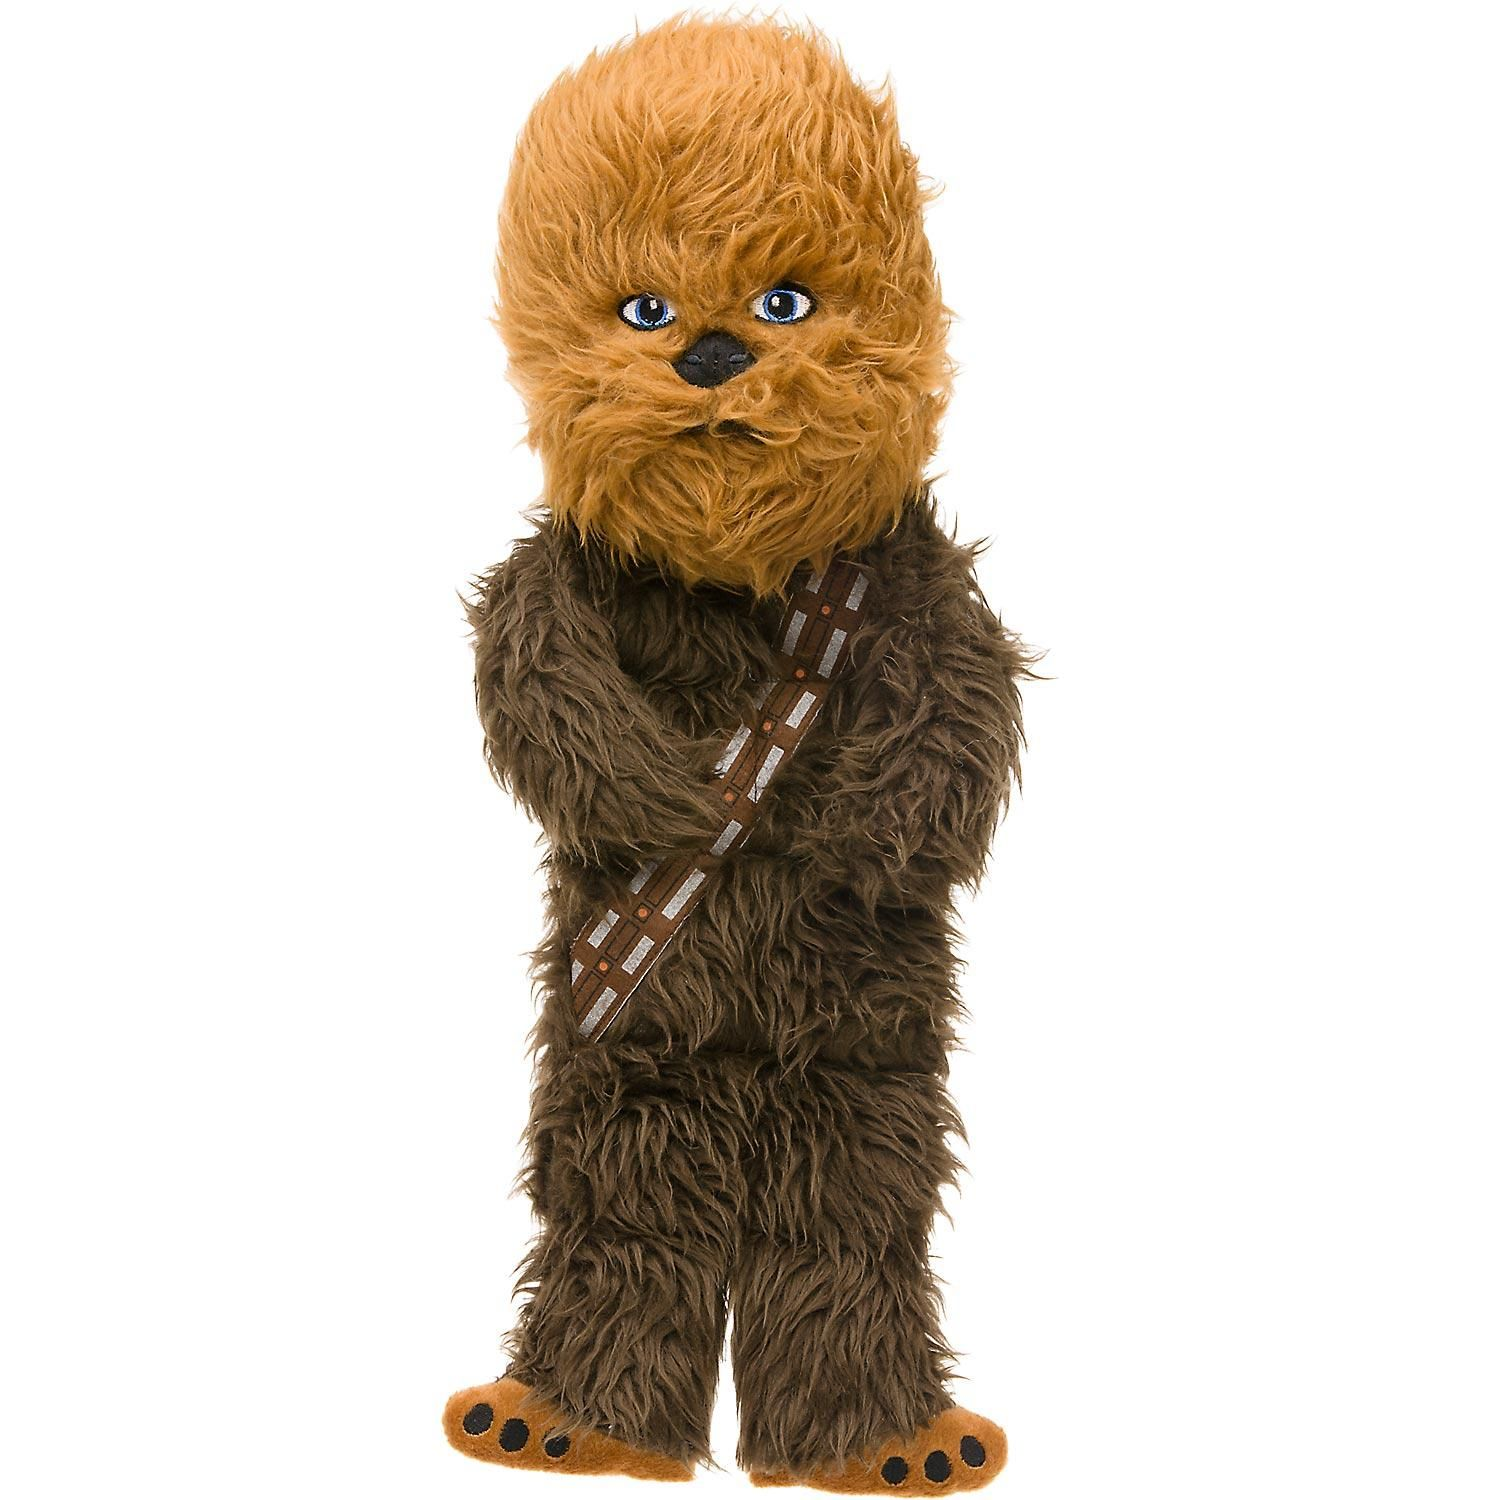 Star Wars Chewbacca Multi Squeaker Dog Toy At Petco Interactive